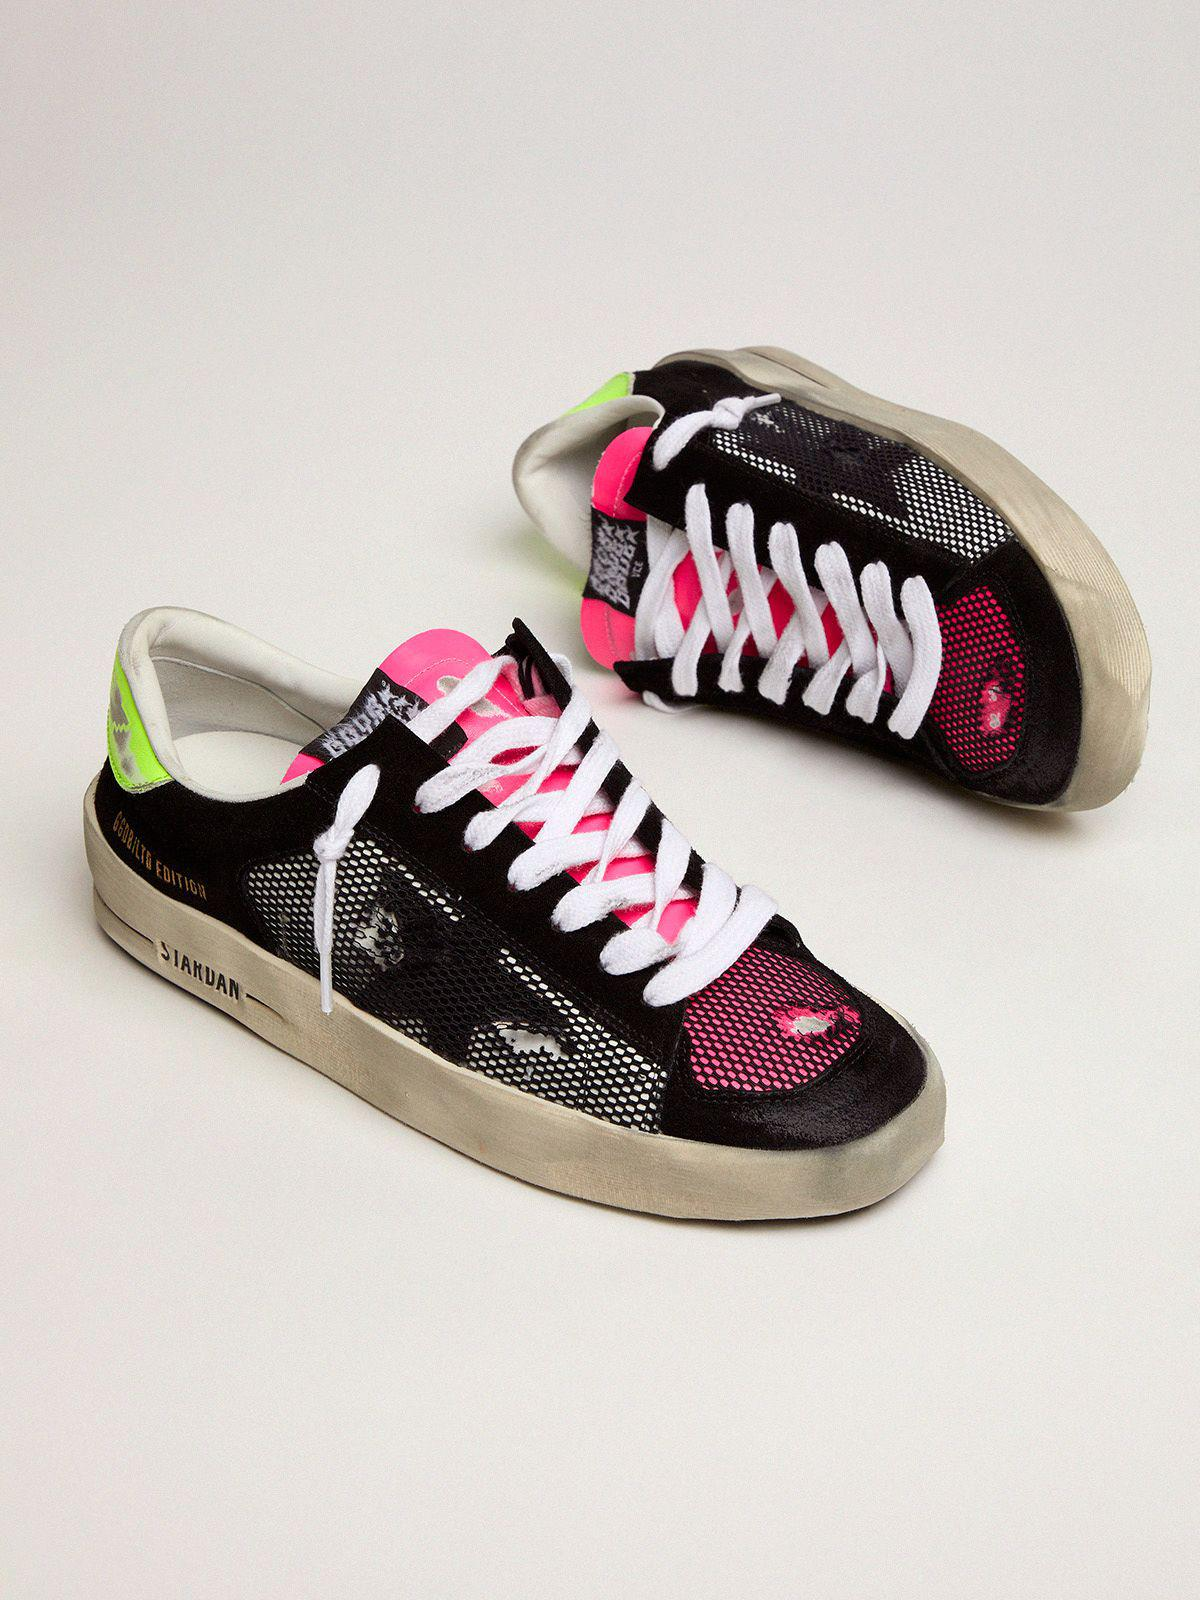 Women's Limited Edition Stardan sneakers in fuchsia and yellow 1